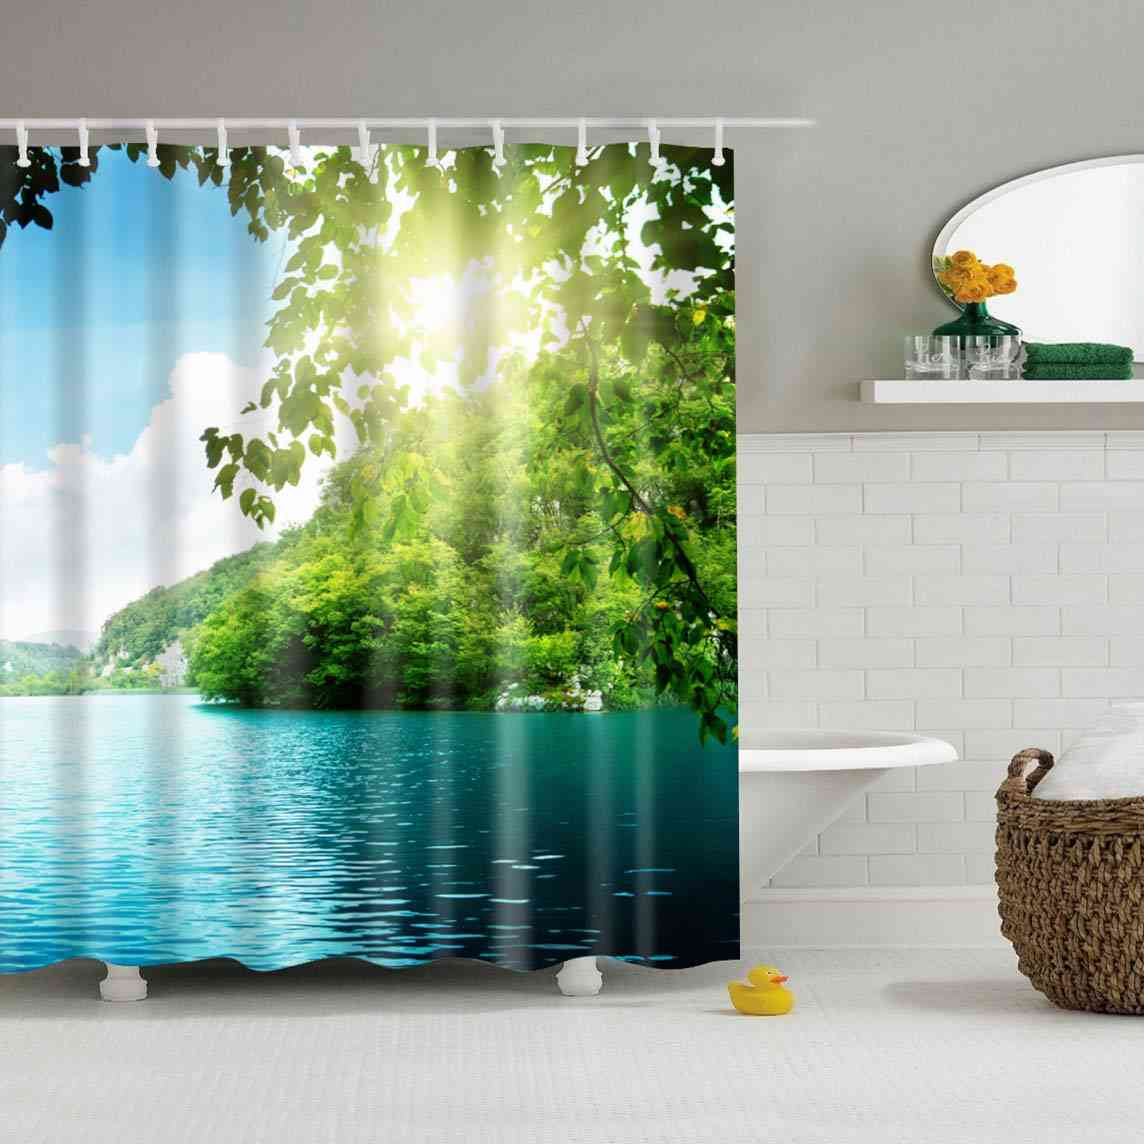 Waterproof Polyester Fabric 3d Forest Style Bath Curtain For Bathroom